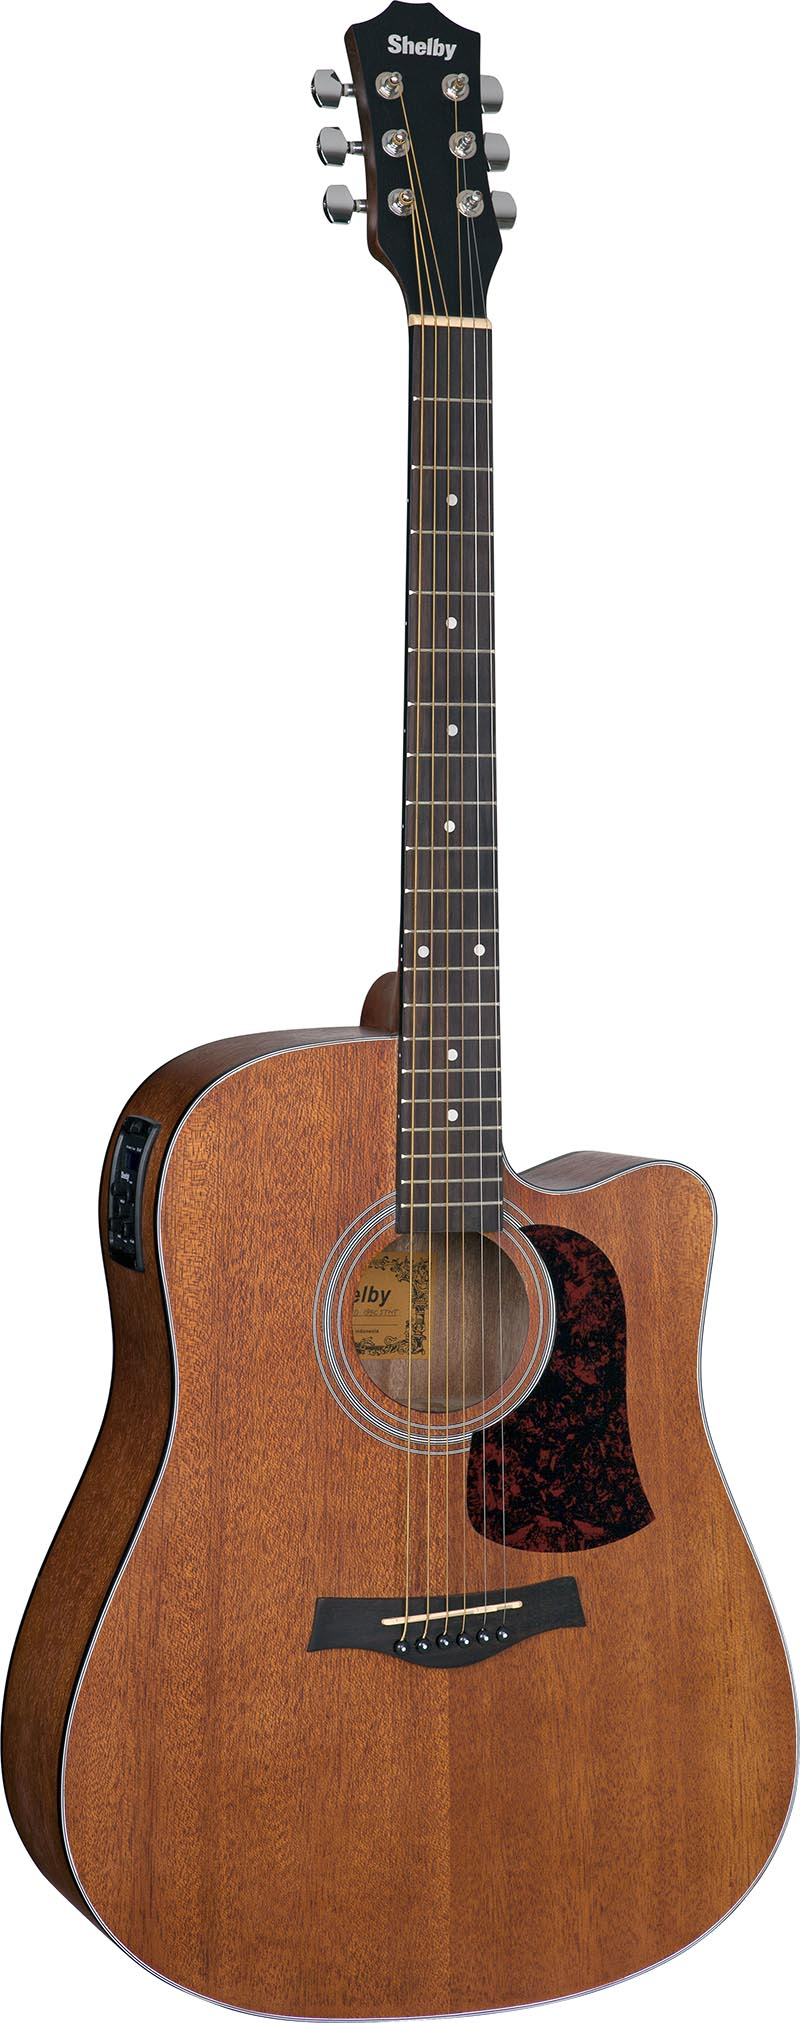 sgd195c violao folk dreadnought shelby sgd195c stnt natural acetinado visao frontal vertical